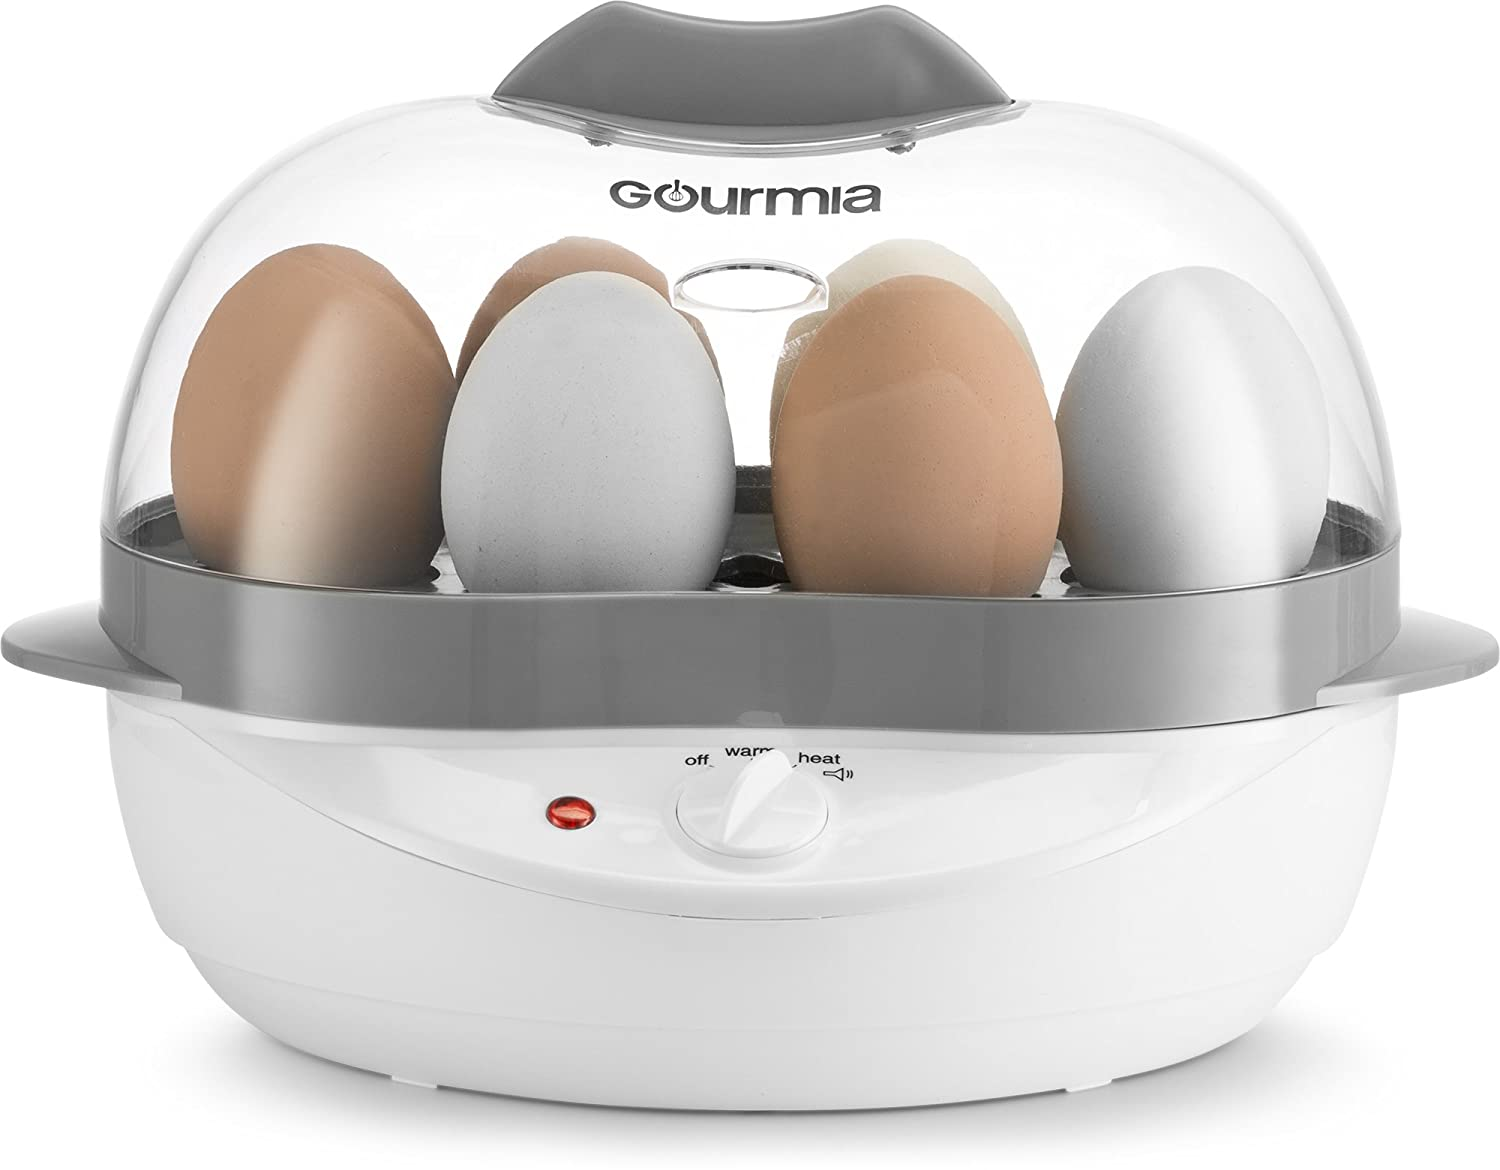 Gourmia GEC175 Electric Egg Cooker - Boils, Steams and Poaches - 6 Egg Capacity - Steaming Shelf for Bread and Vegetables